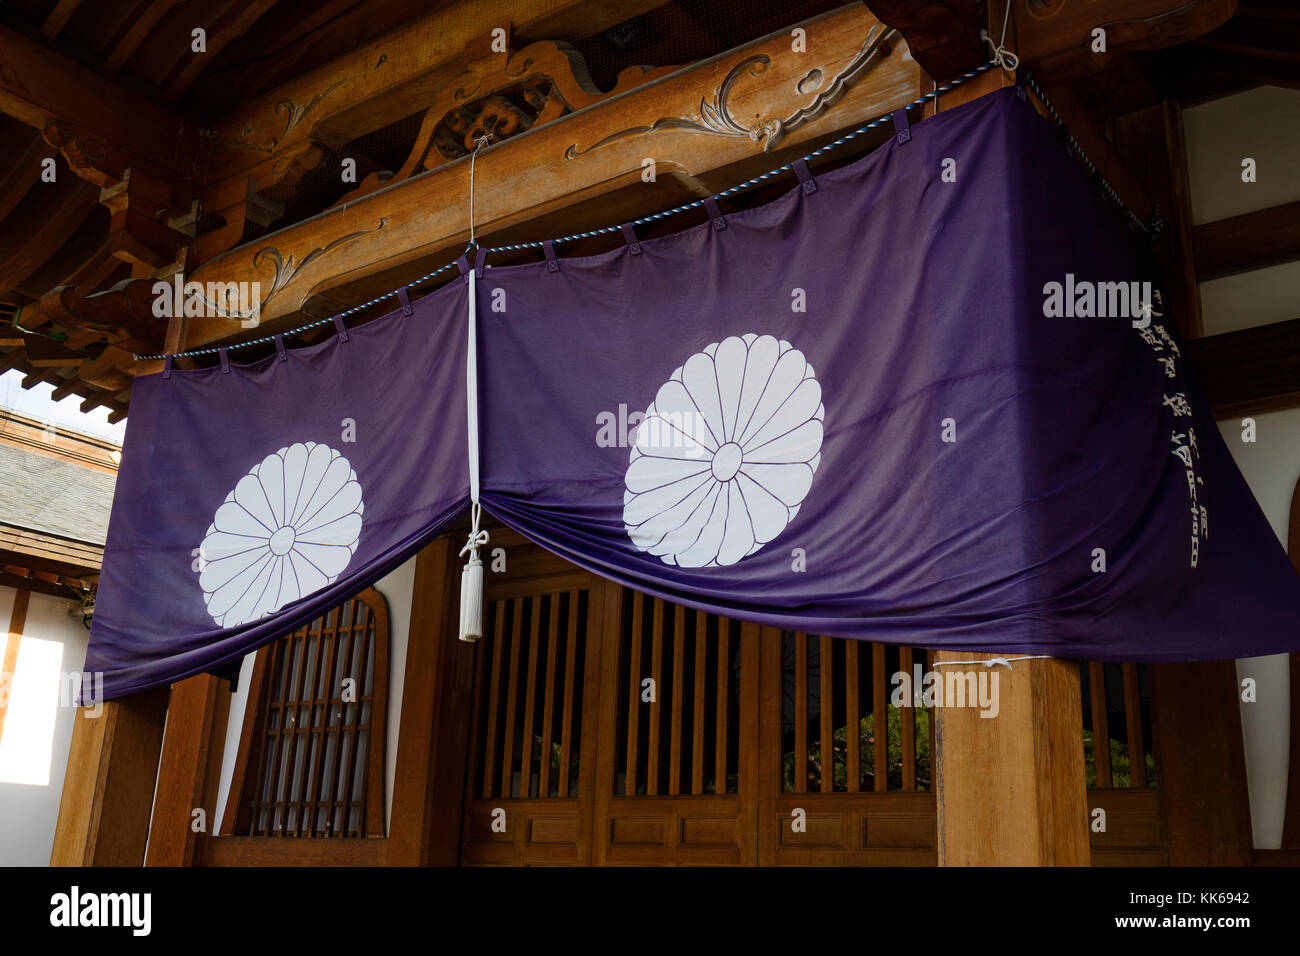 Nagano - Japan, June 3, 2017: Purple temple curtain with a white knot at the Buddhist Zenkoji temple in Nagano - Stock Image